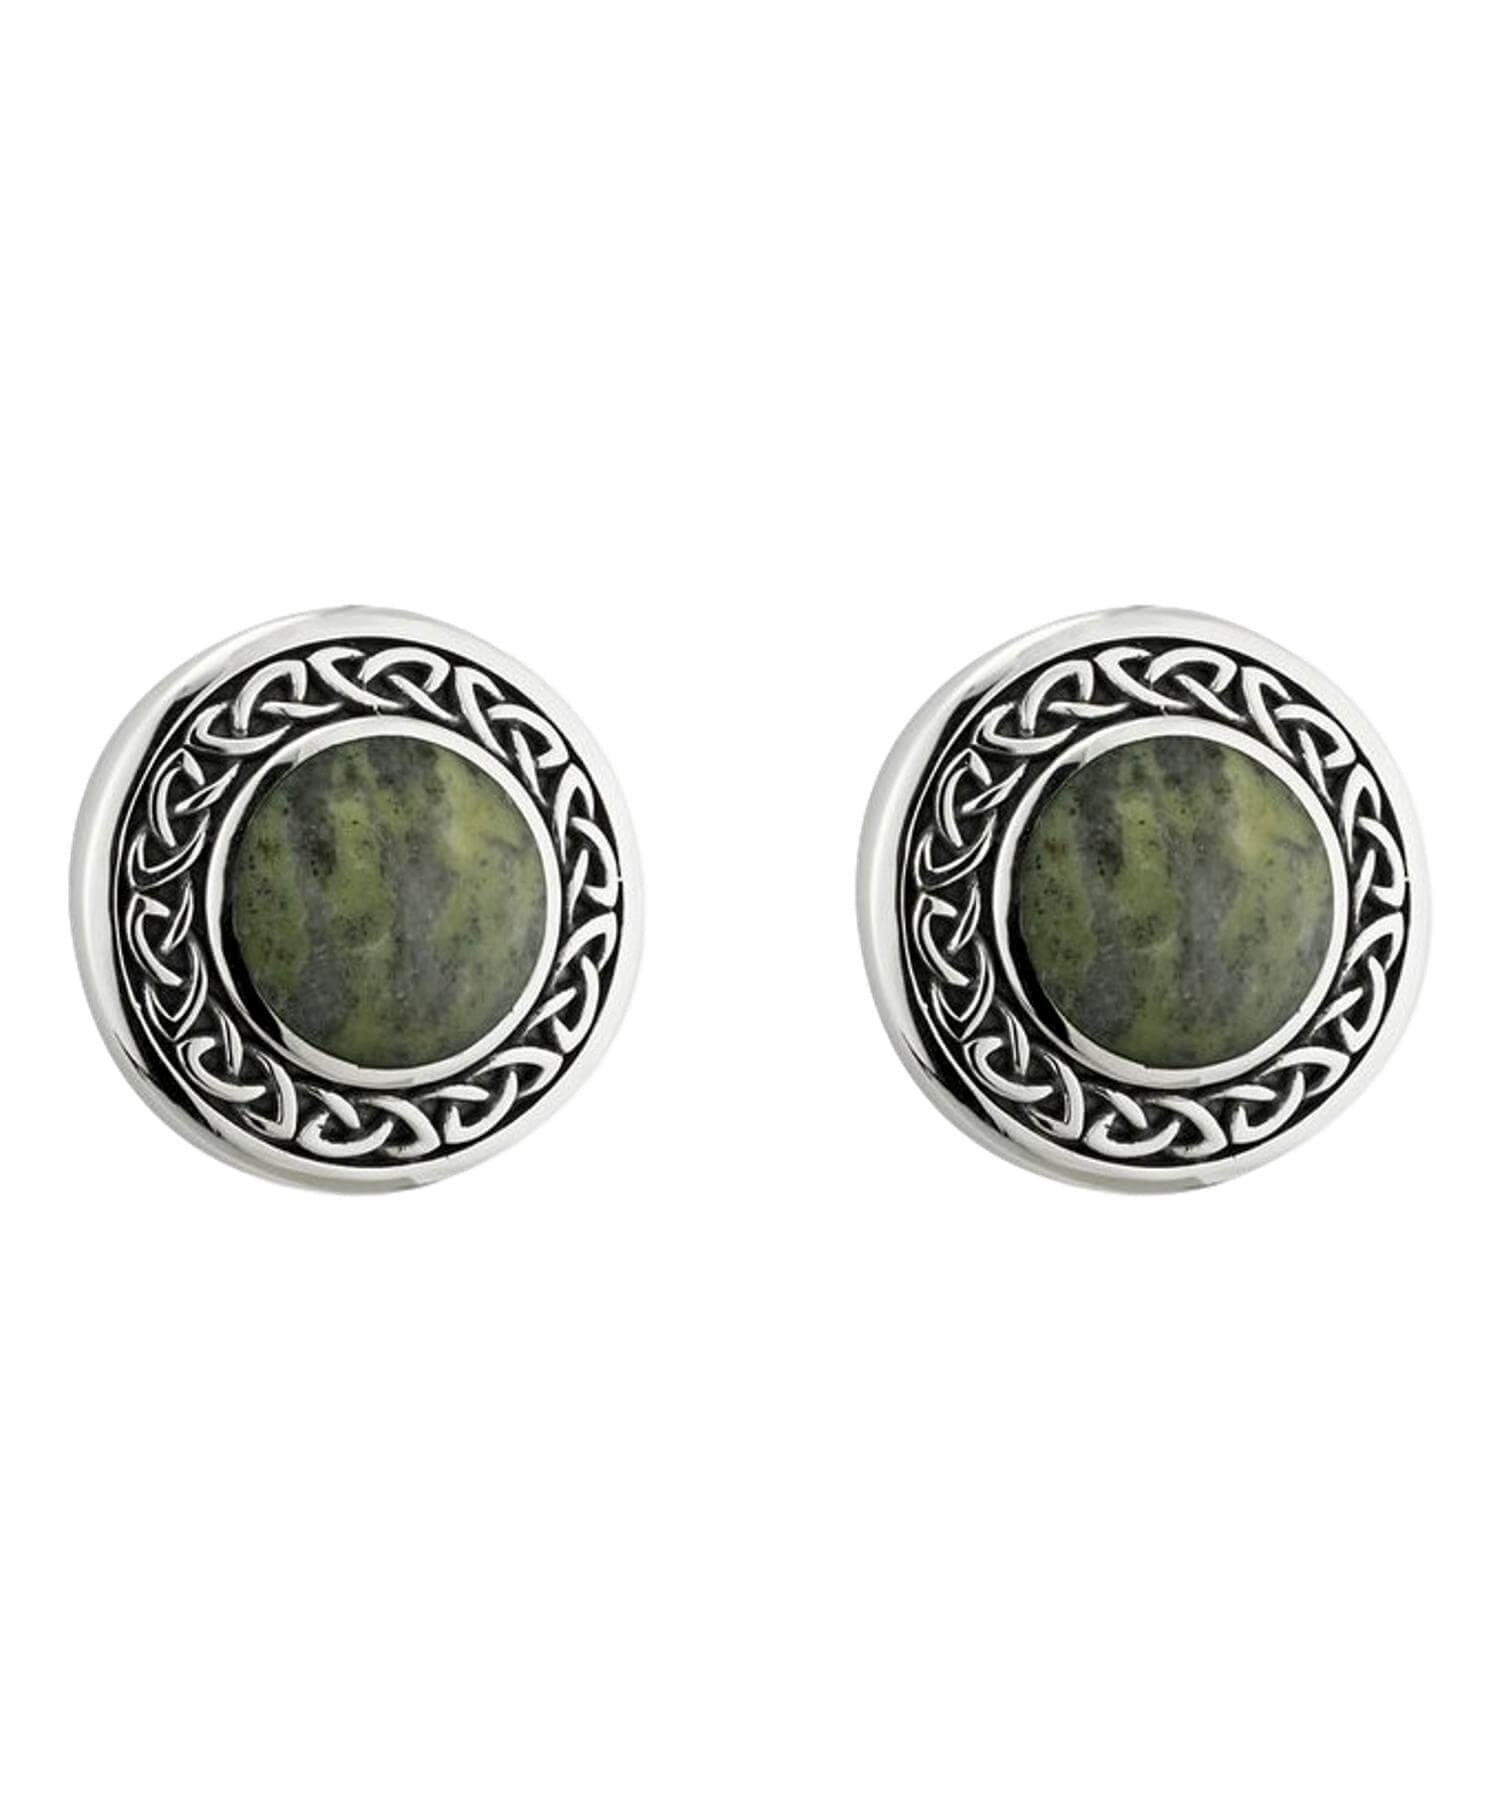 Connemara Marble Stud Earrings Solvar Celtic Jewellery